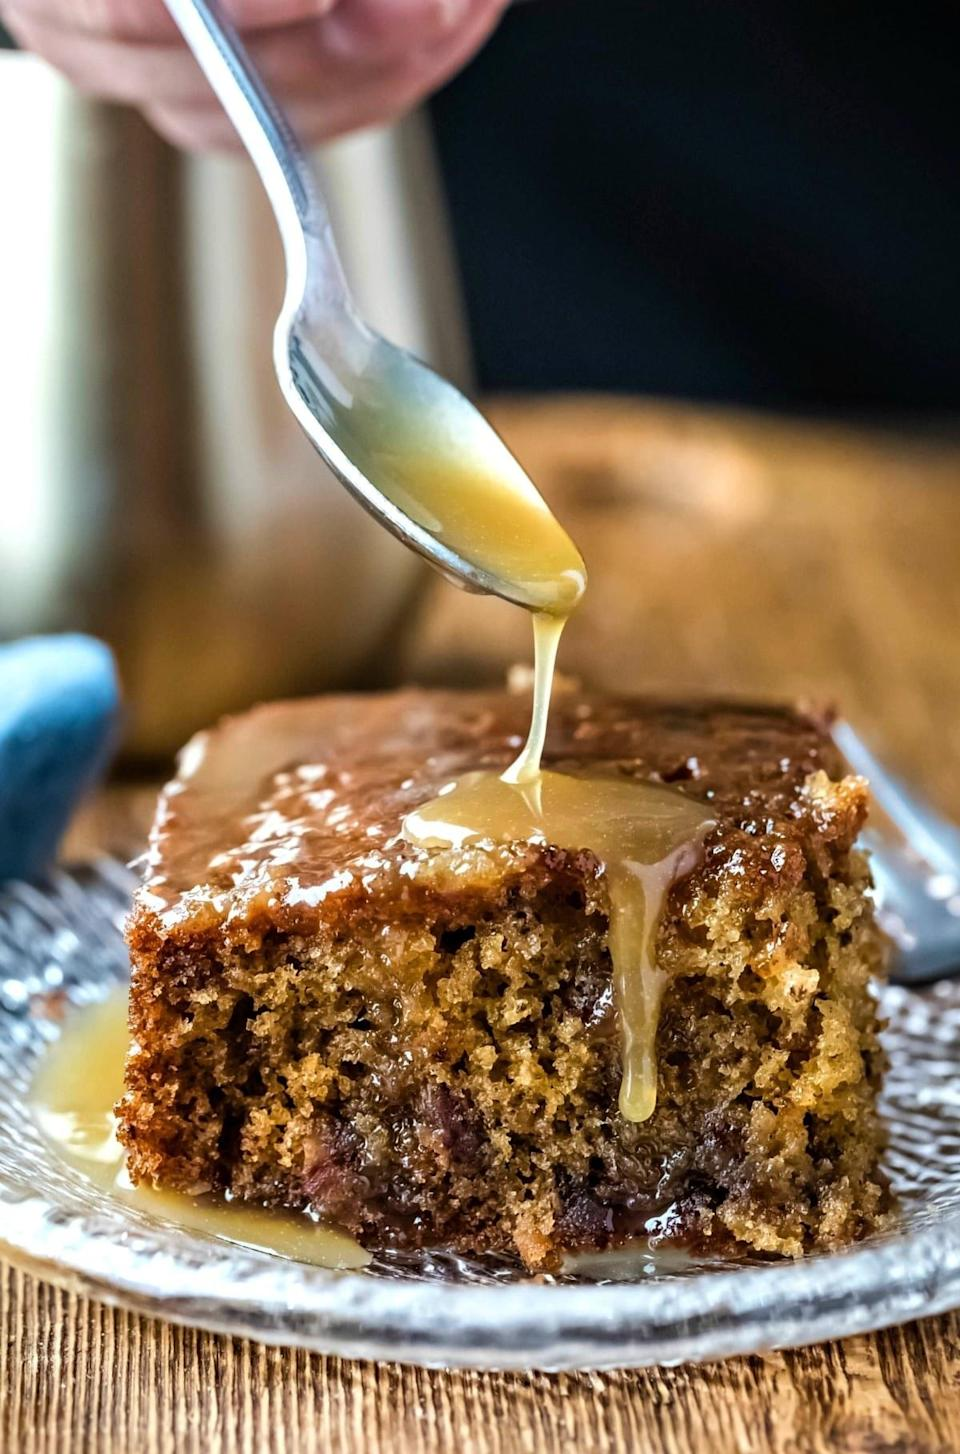 Drizzling caramel onto sticky toffee pudding cake.